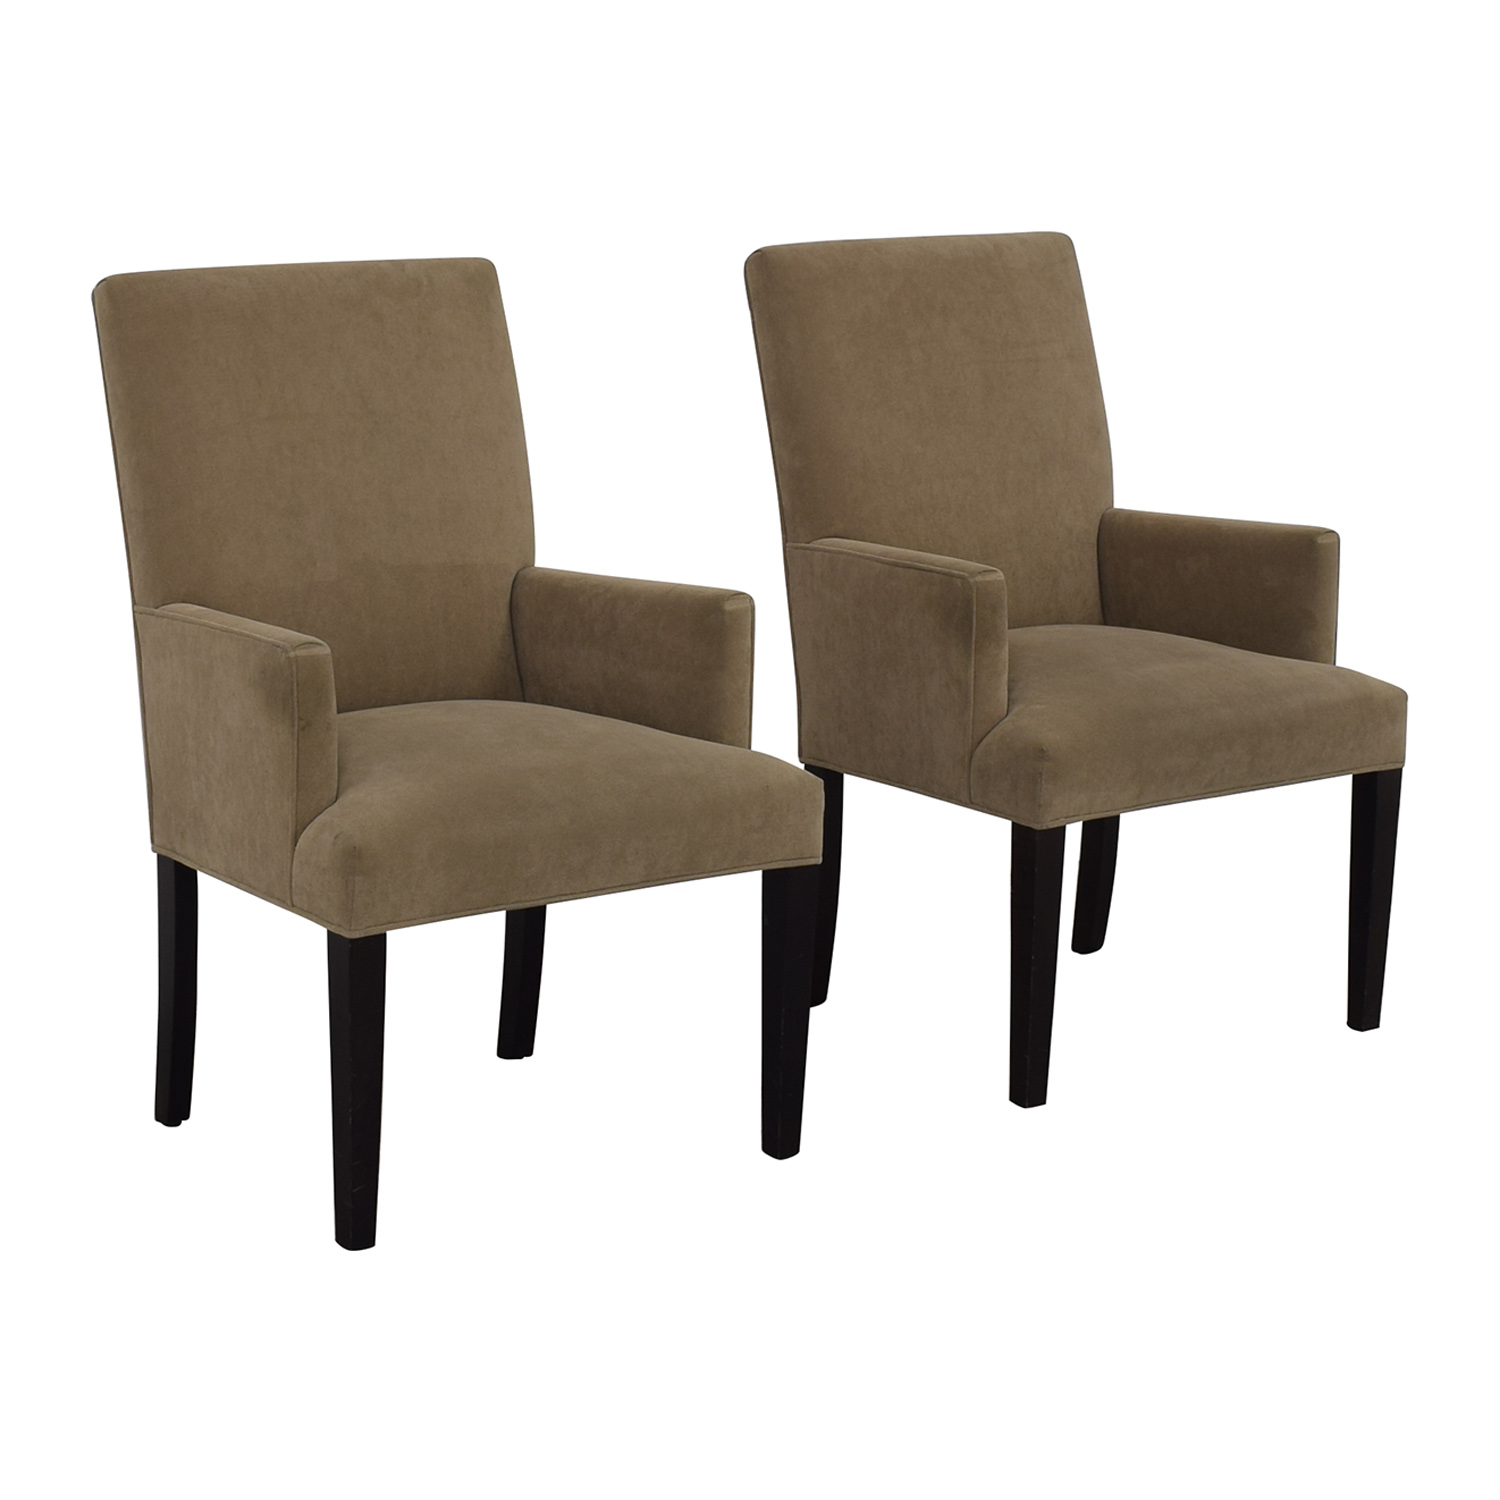 Crate & Barrel Tan Dining Chairs sale